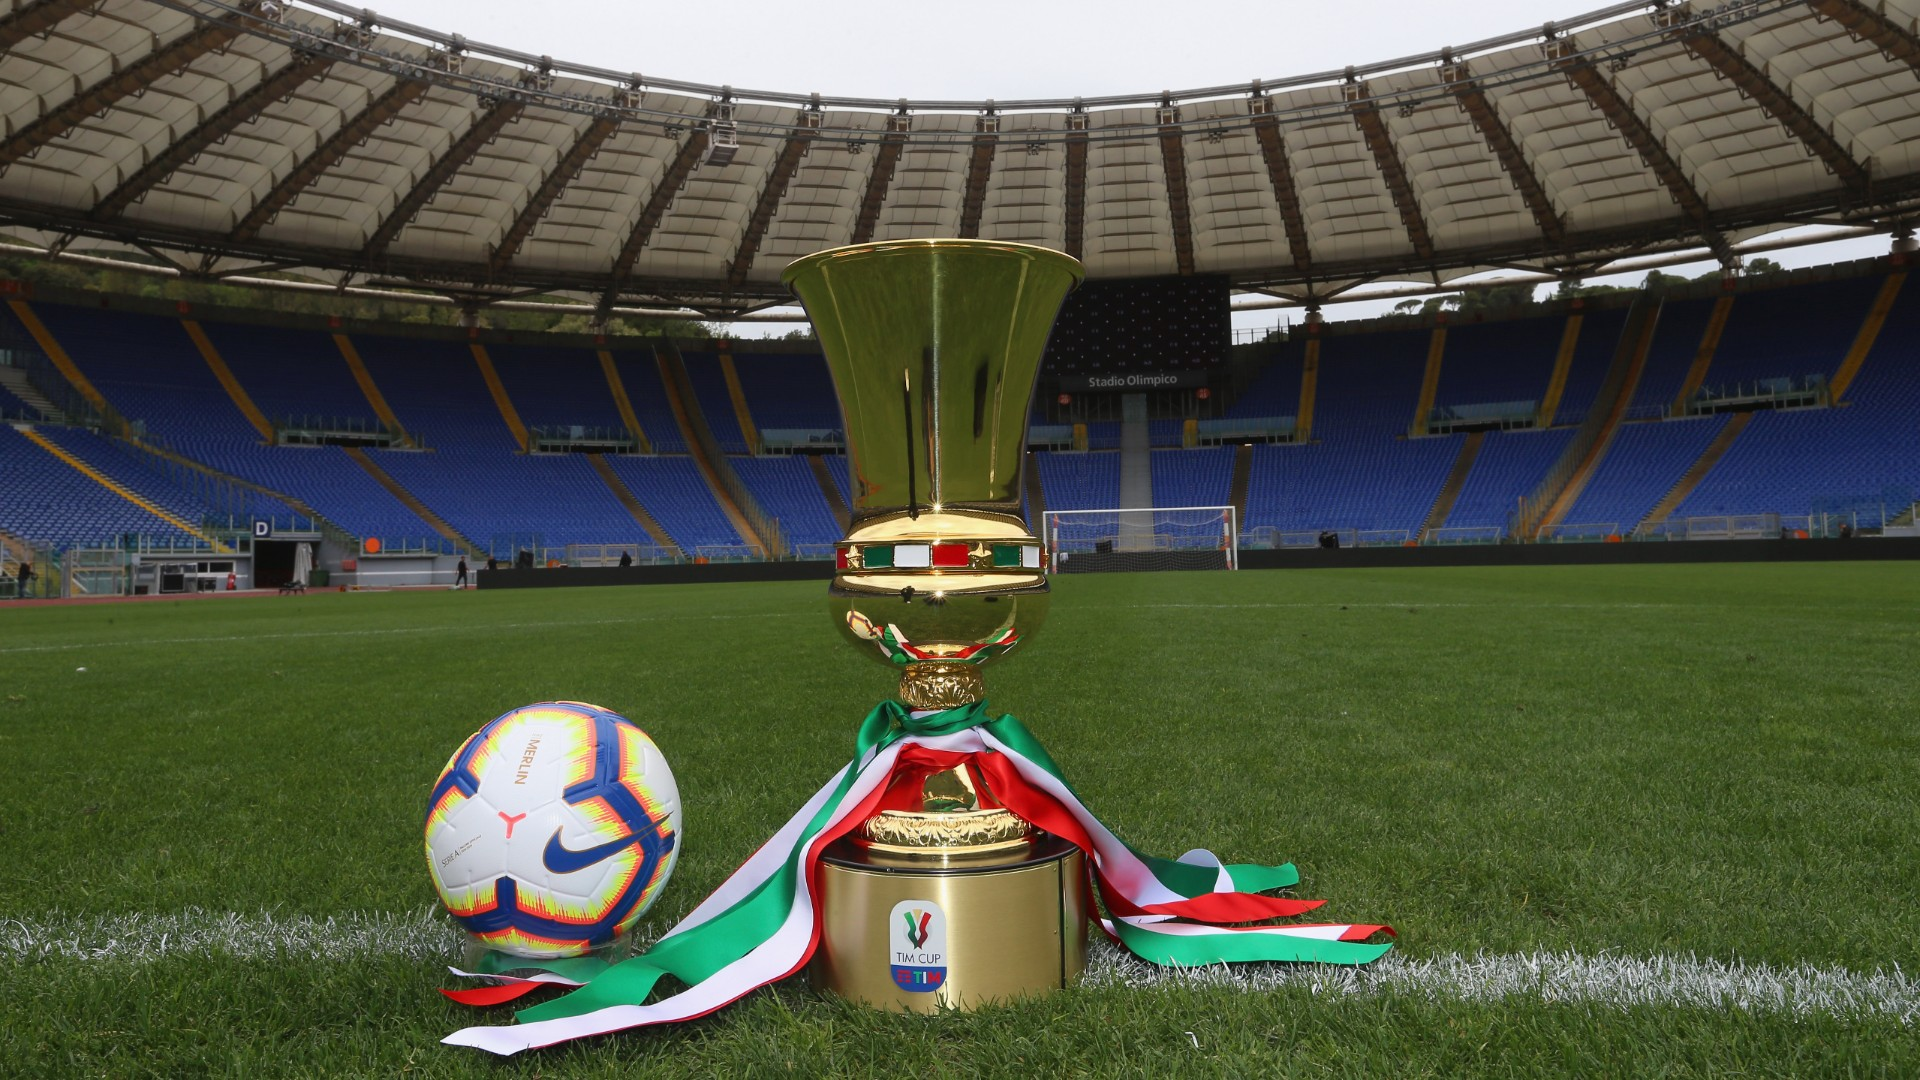 Come finirà la Coppa Italia 2019/2020? | Goal.com